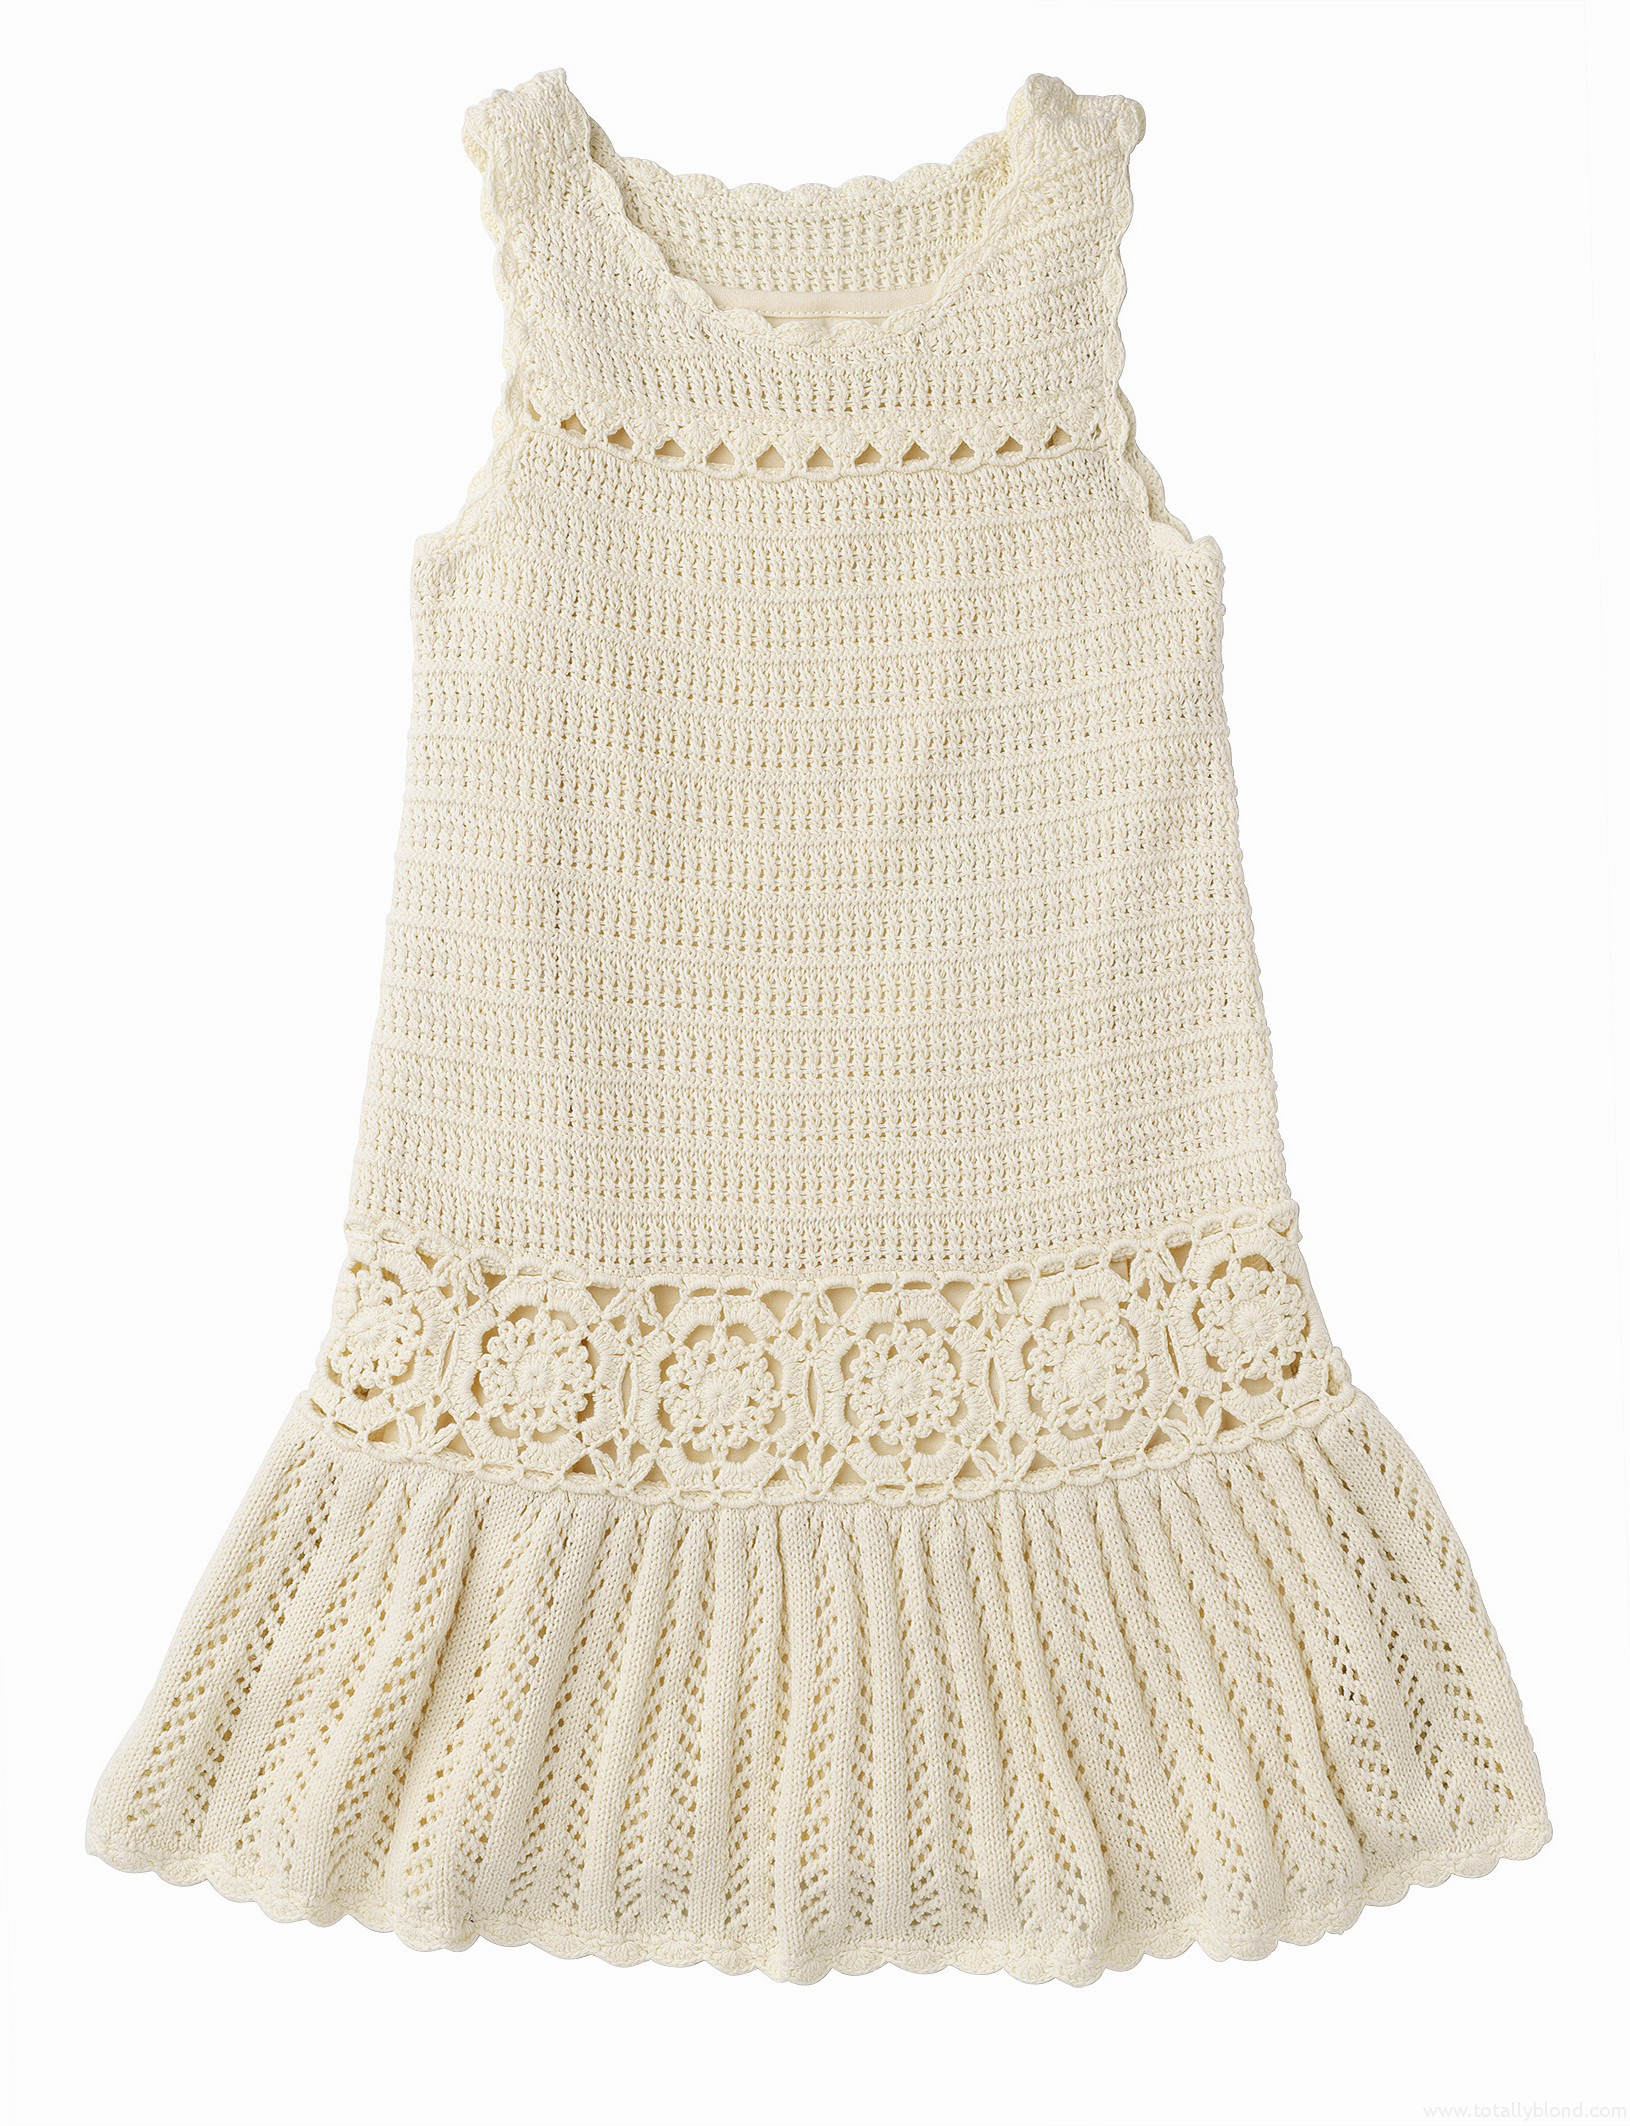 Cream_crochet_dress